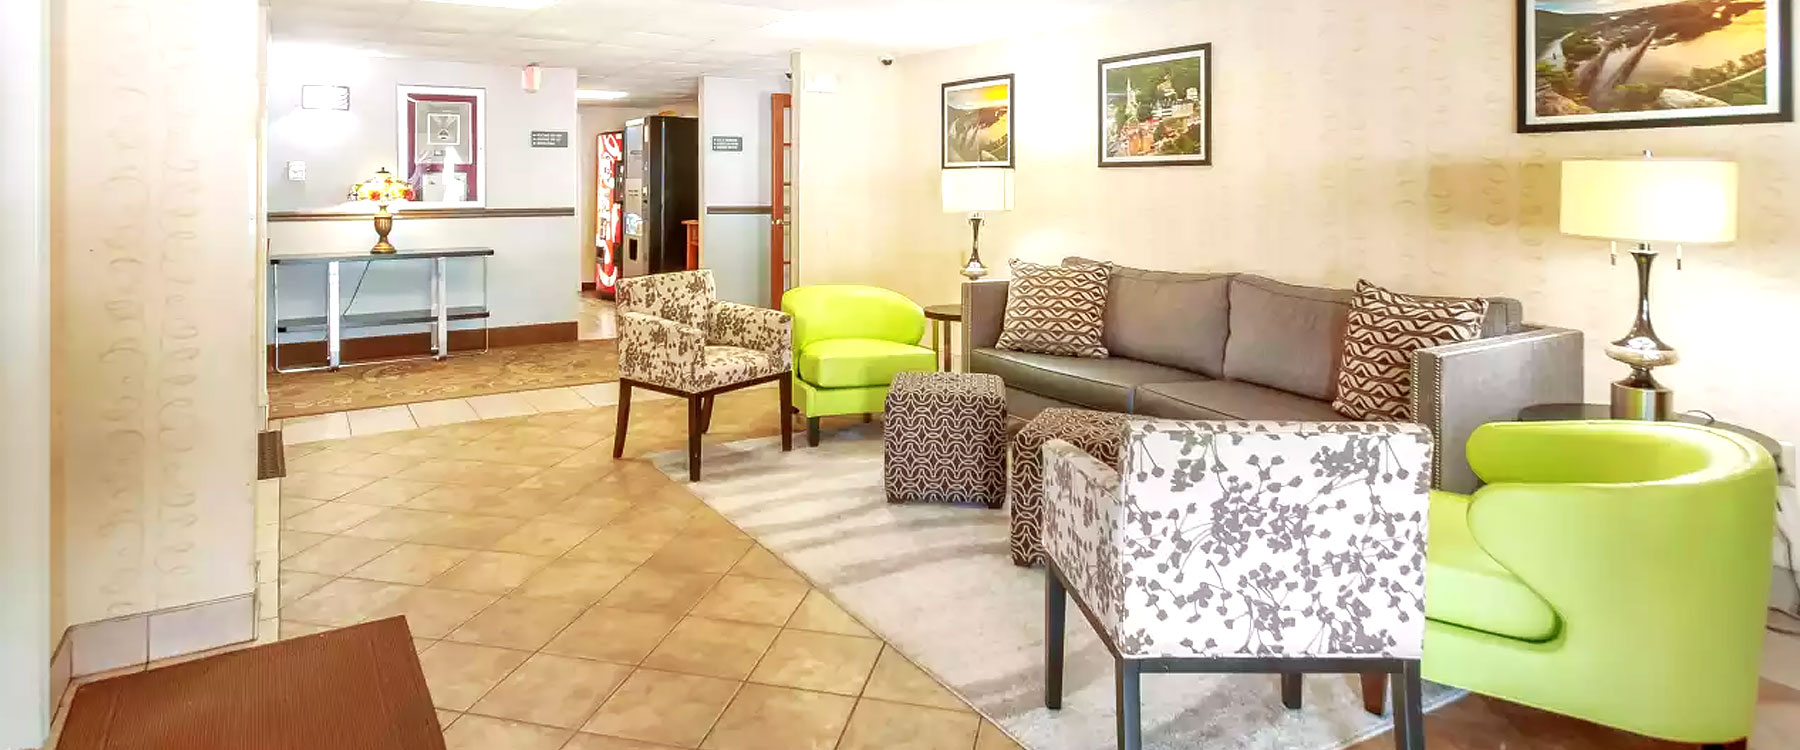 Quality Inn Harpers Ferry in Harpers Ferry West Virginia Home